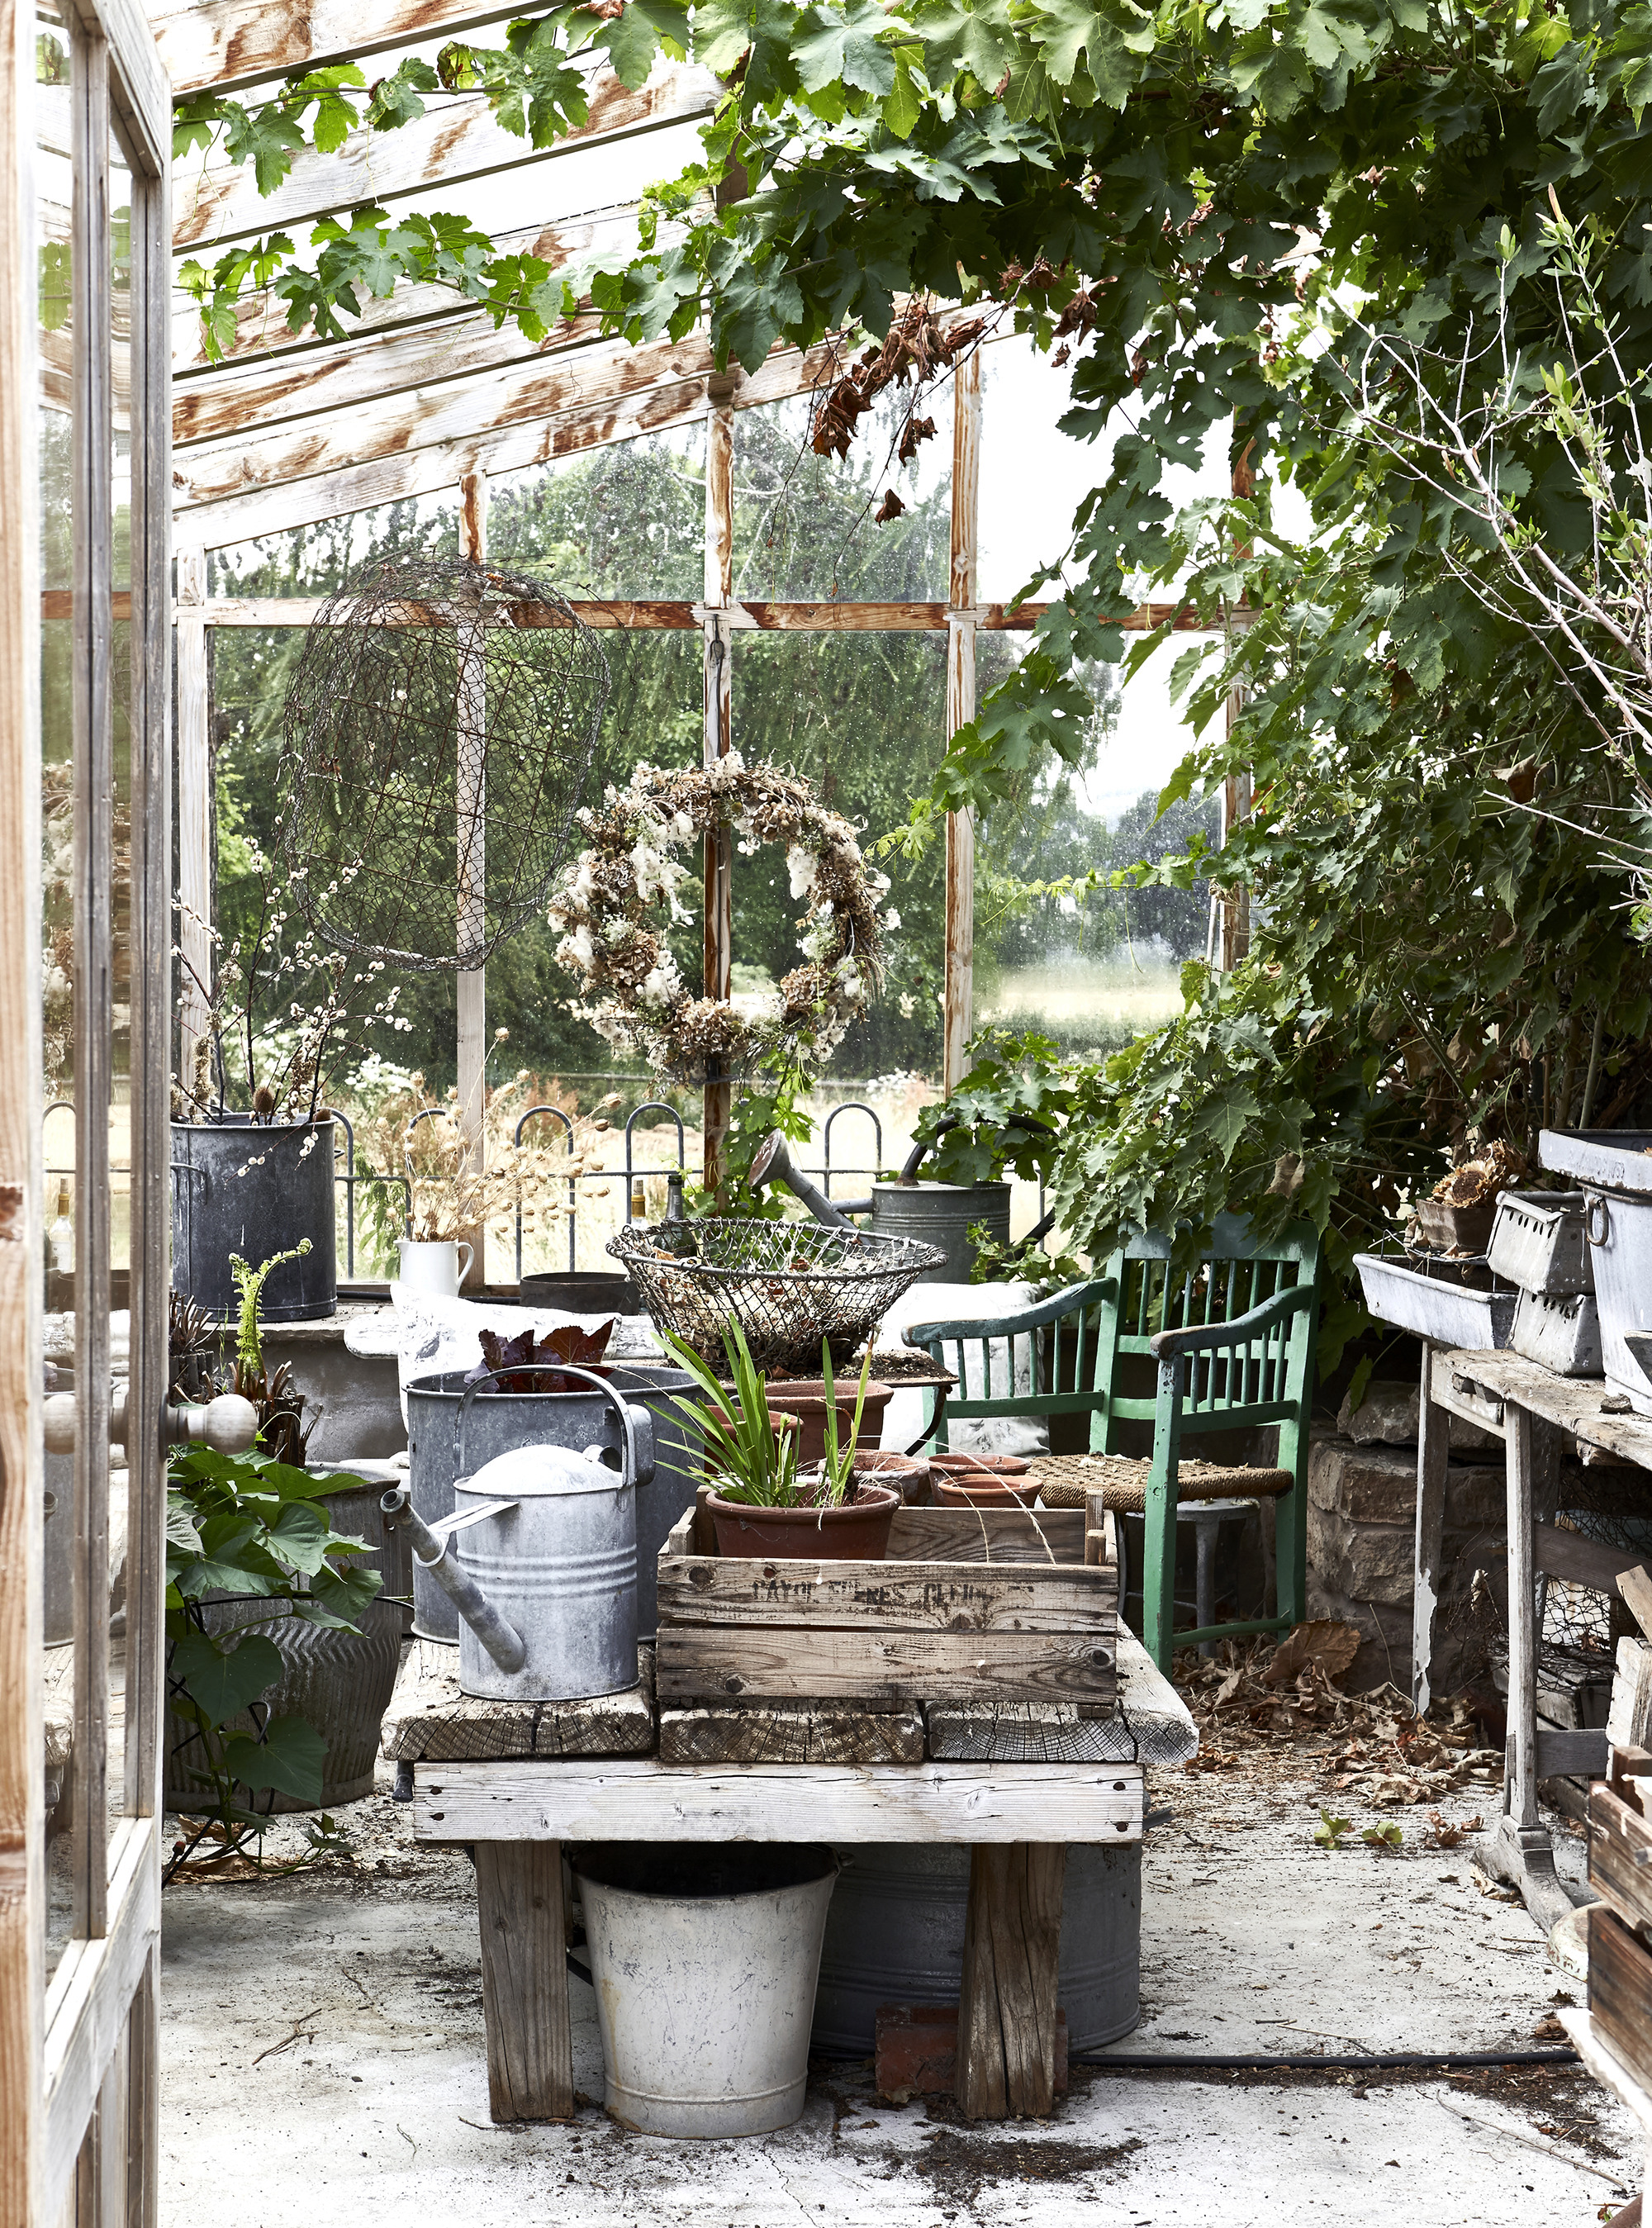 Amazing rustic vintage greenhouse featured in Natural Living Style by Selina Lake